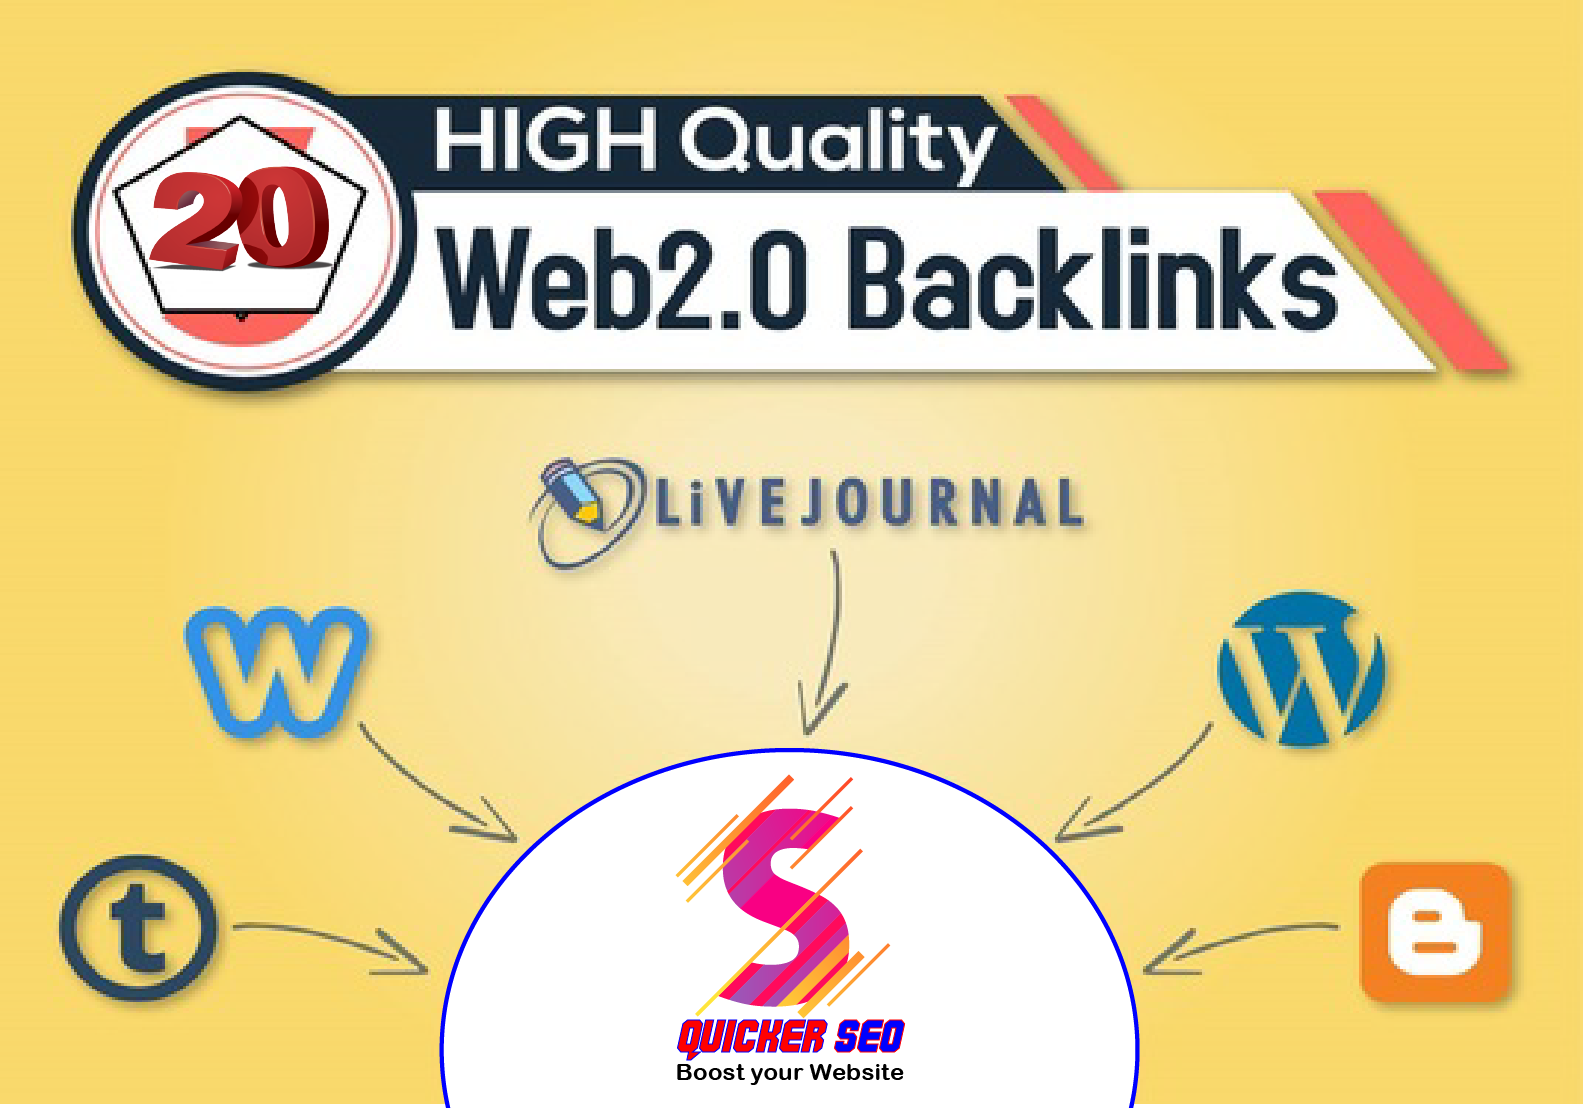 Create 20 Web 2.0 Blogs for Your website with image and Video